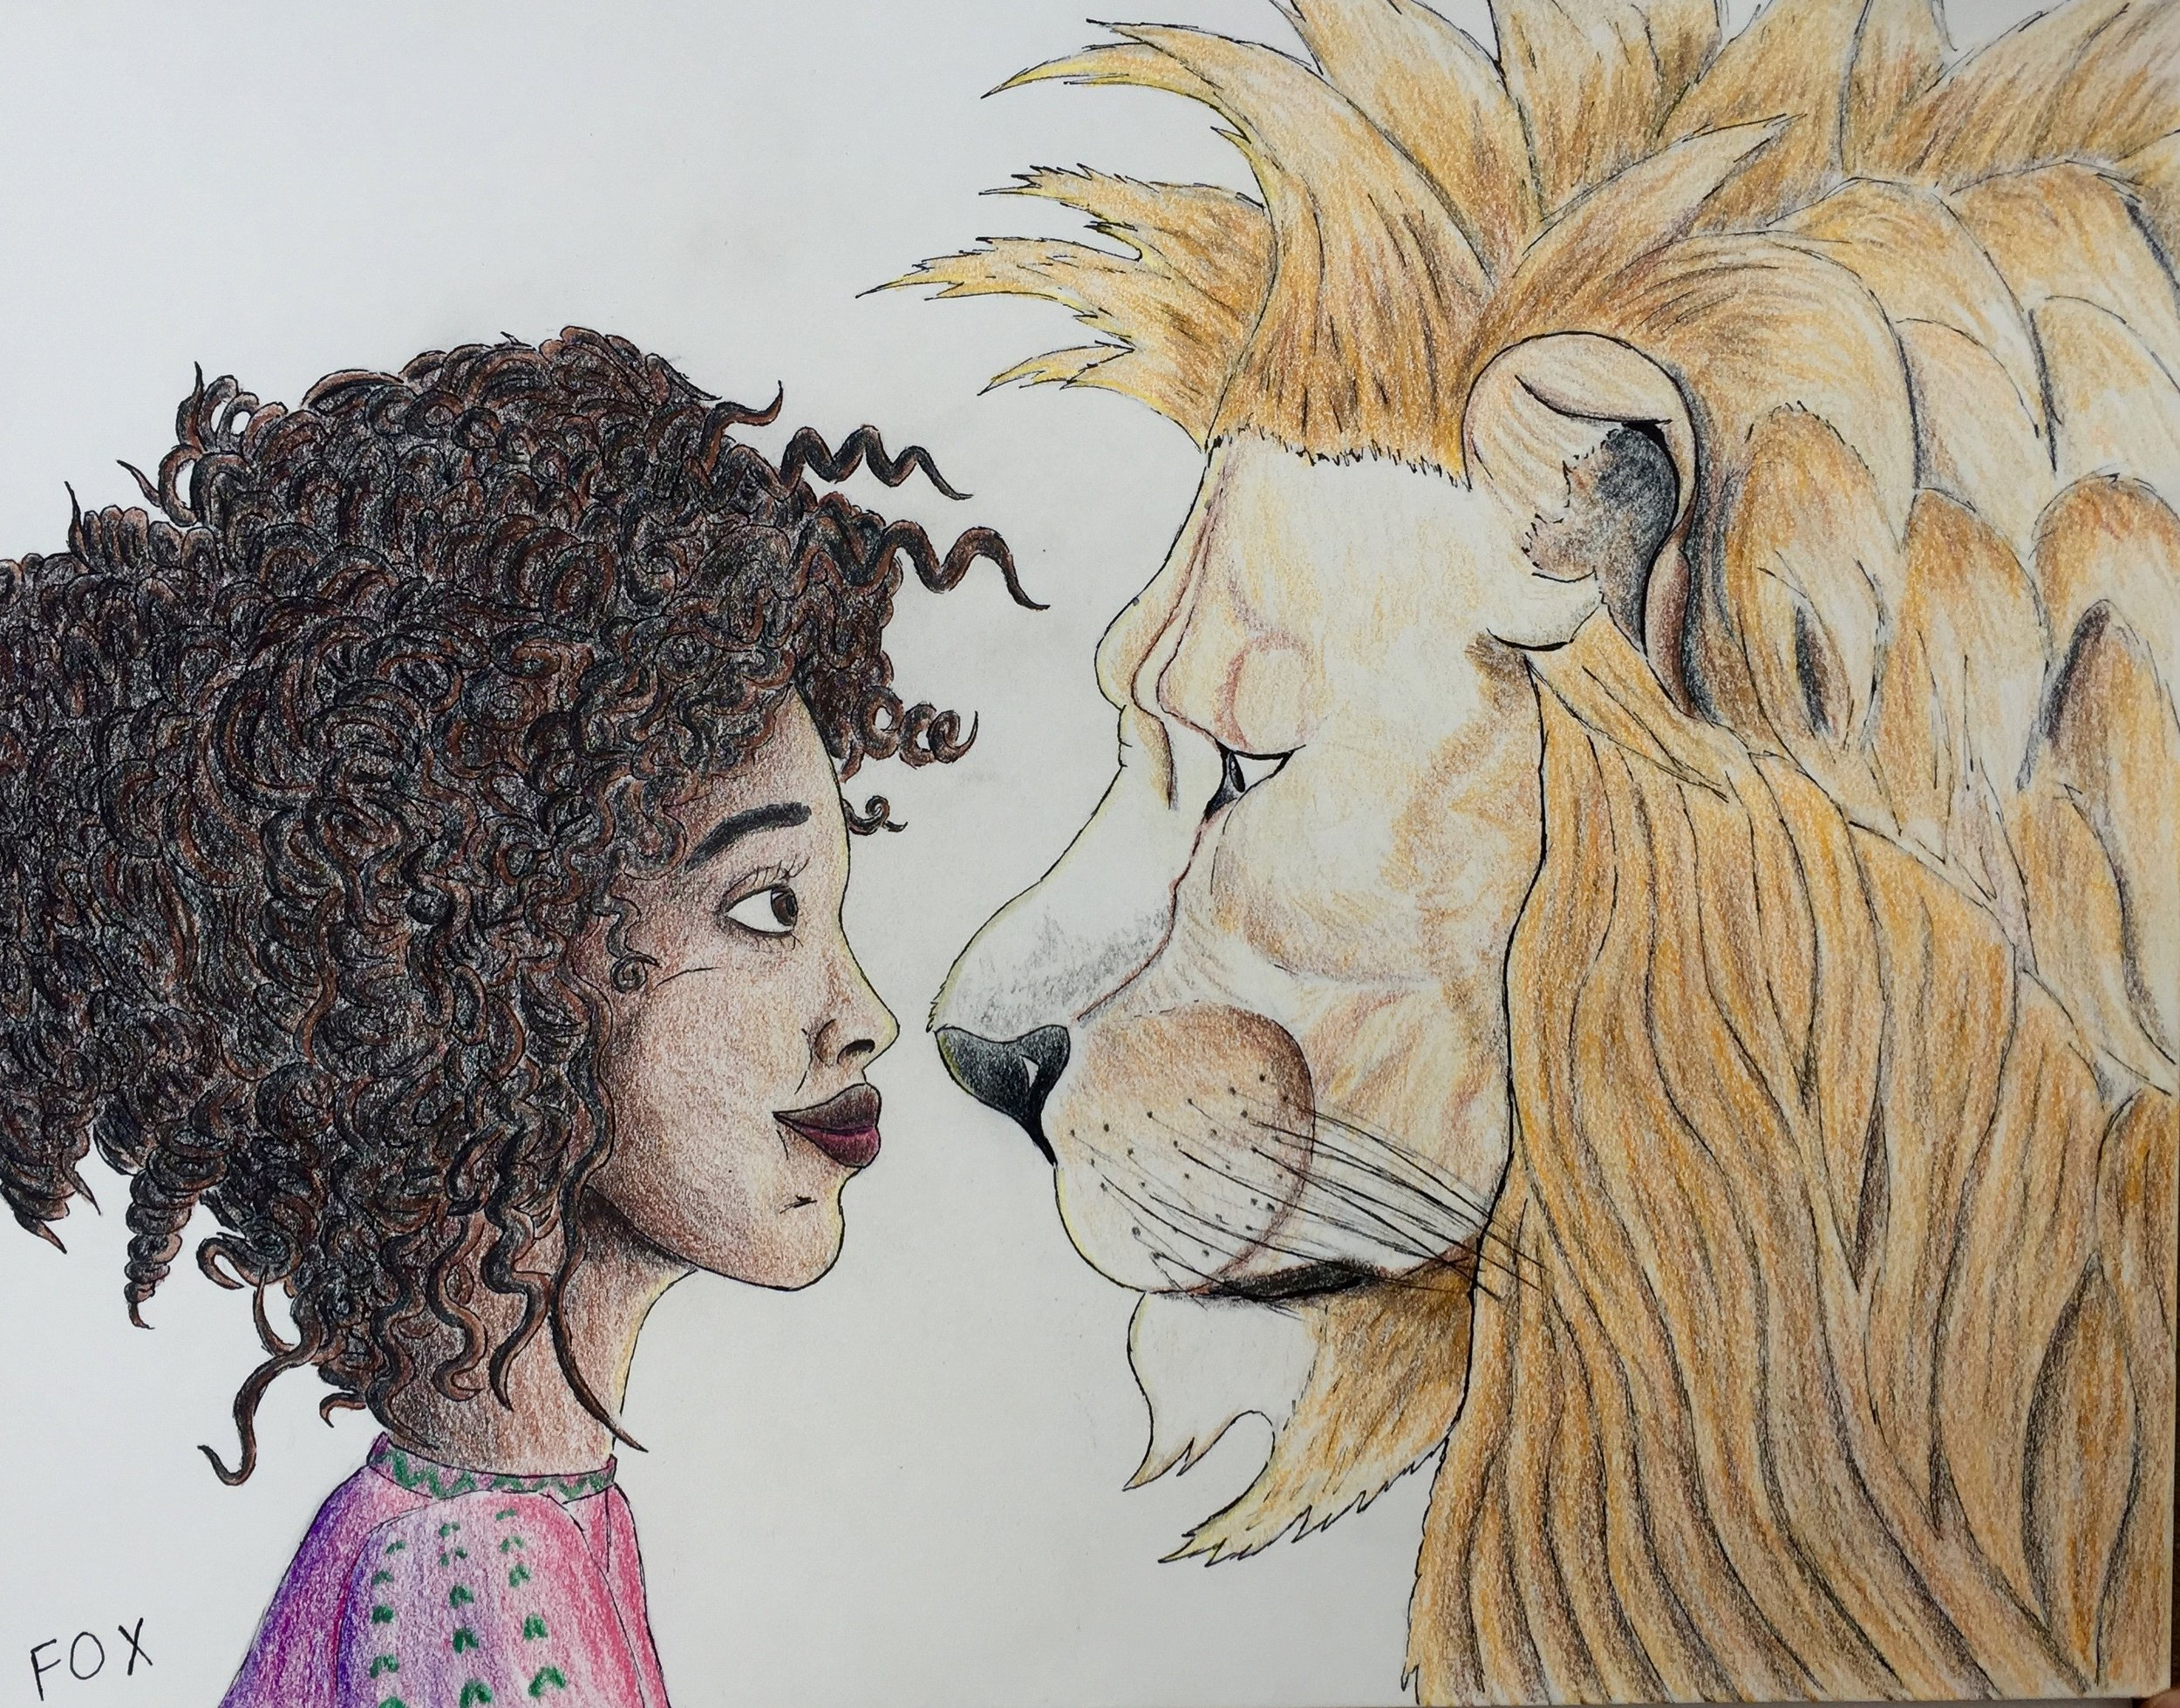 Semhar and the Lion - A young girl befriends a lion in a sweet adventure across the hottest desert in the world, the Danakil, in Eritrea.Pencil and pen outline with colored pencil to fill.